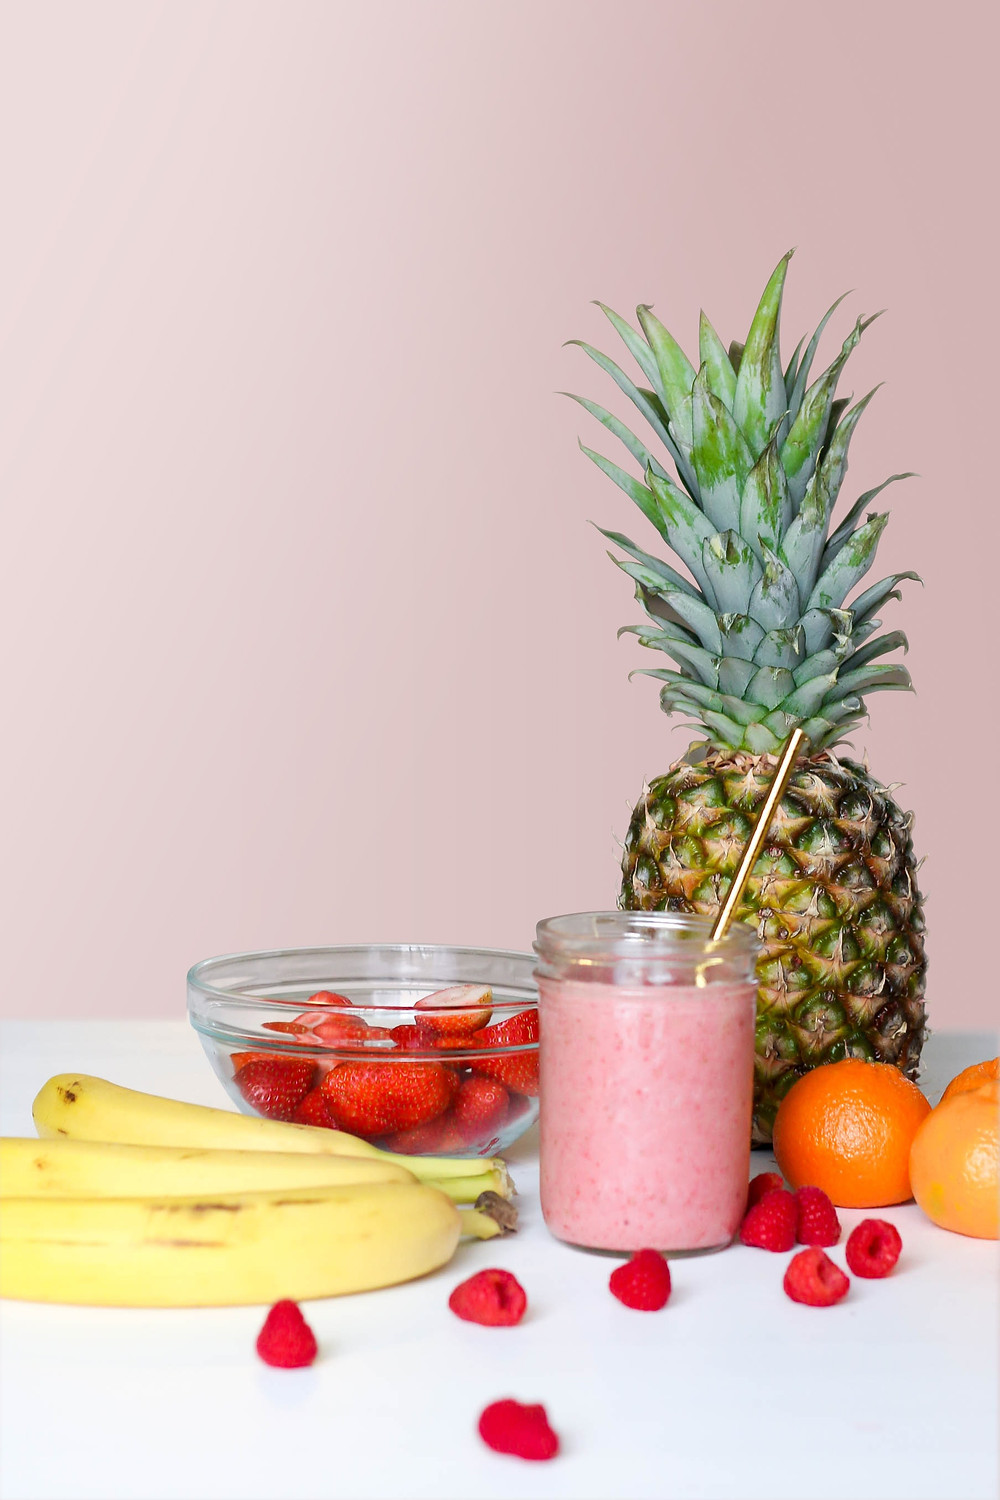 A variety of healthy foods on a table